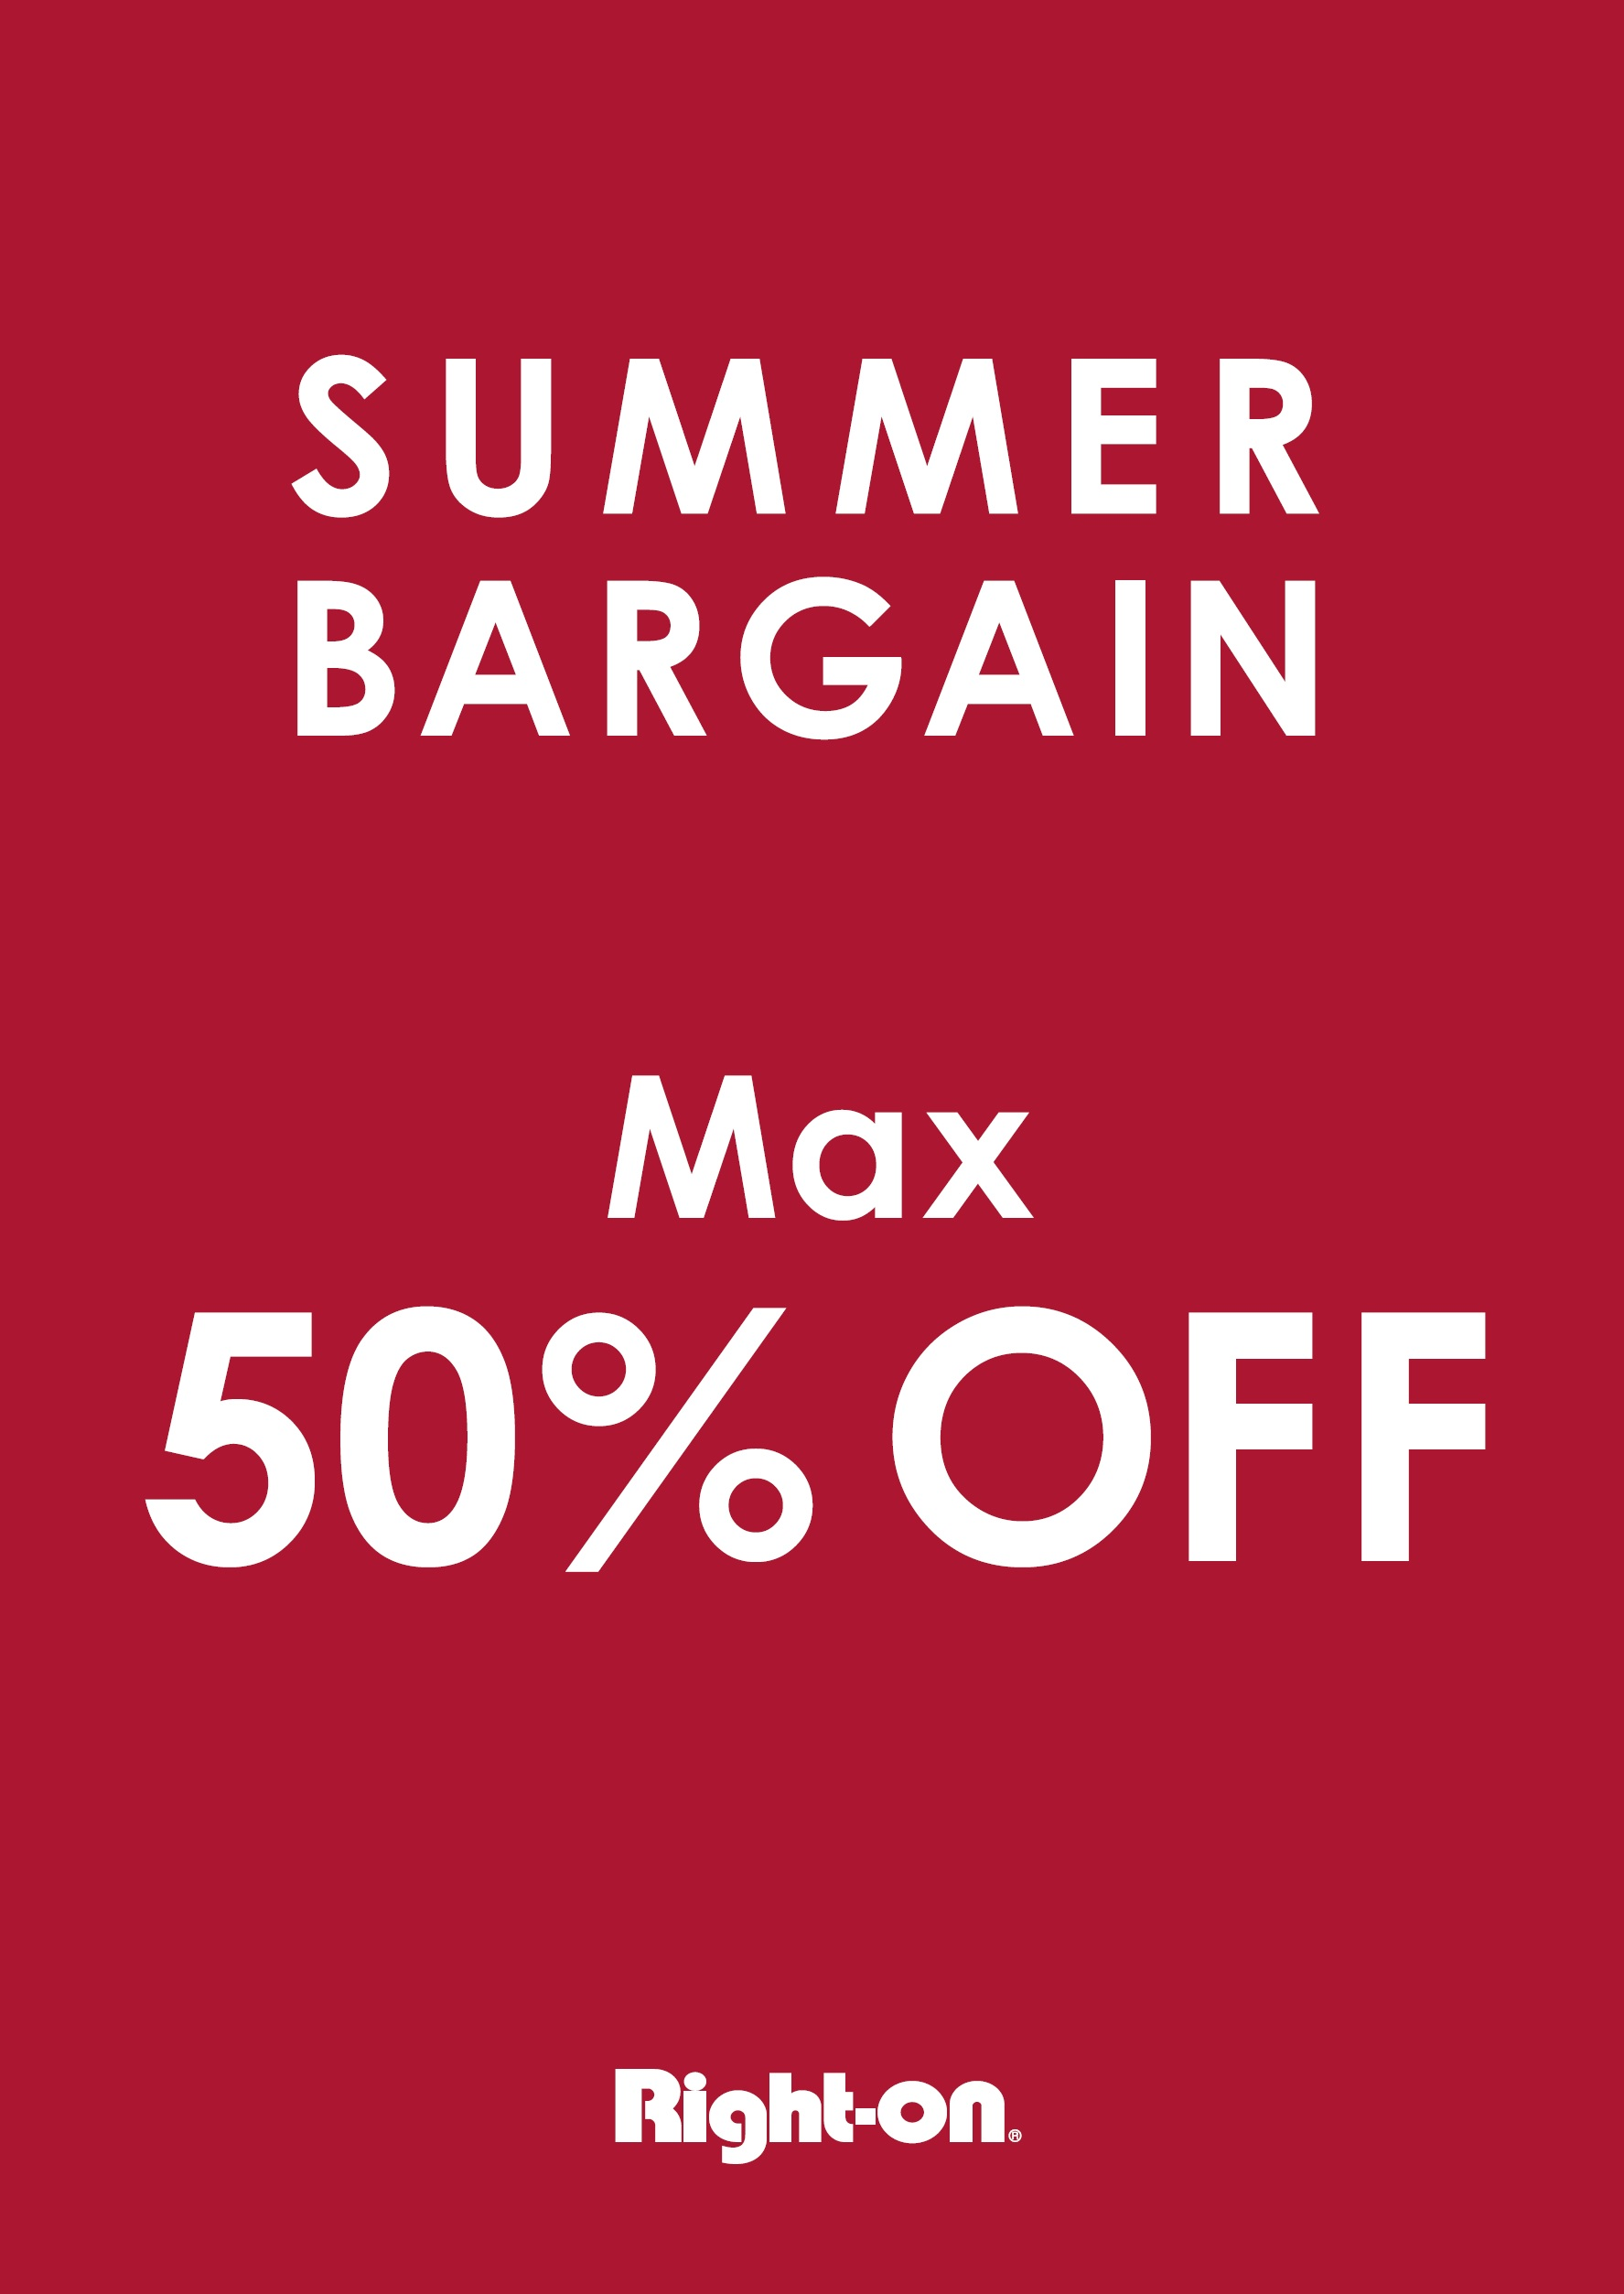 SUMMER BARGAIN Max 50%OFF:イメージ